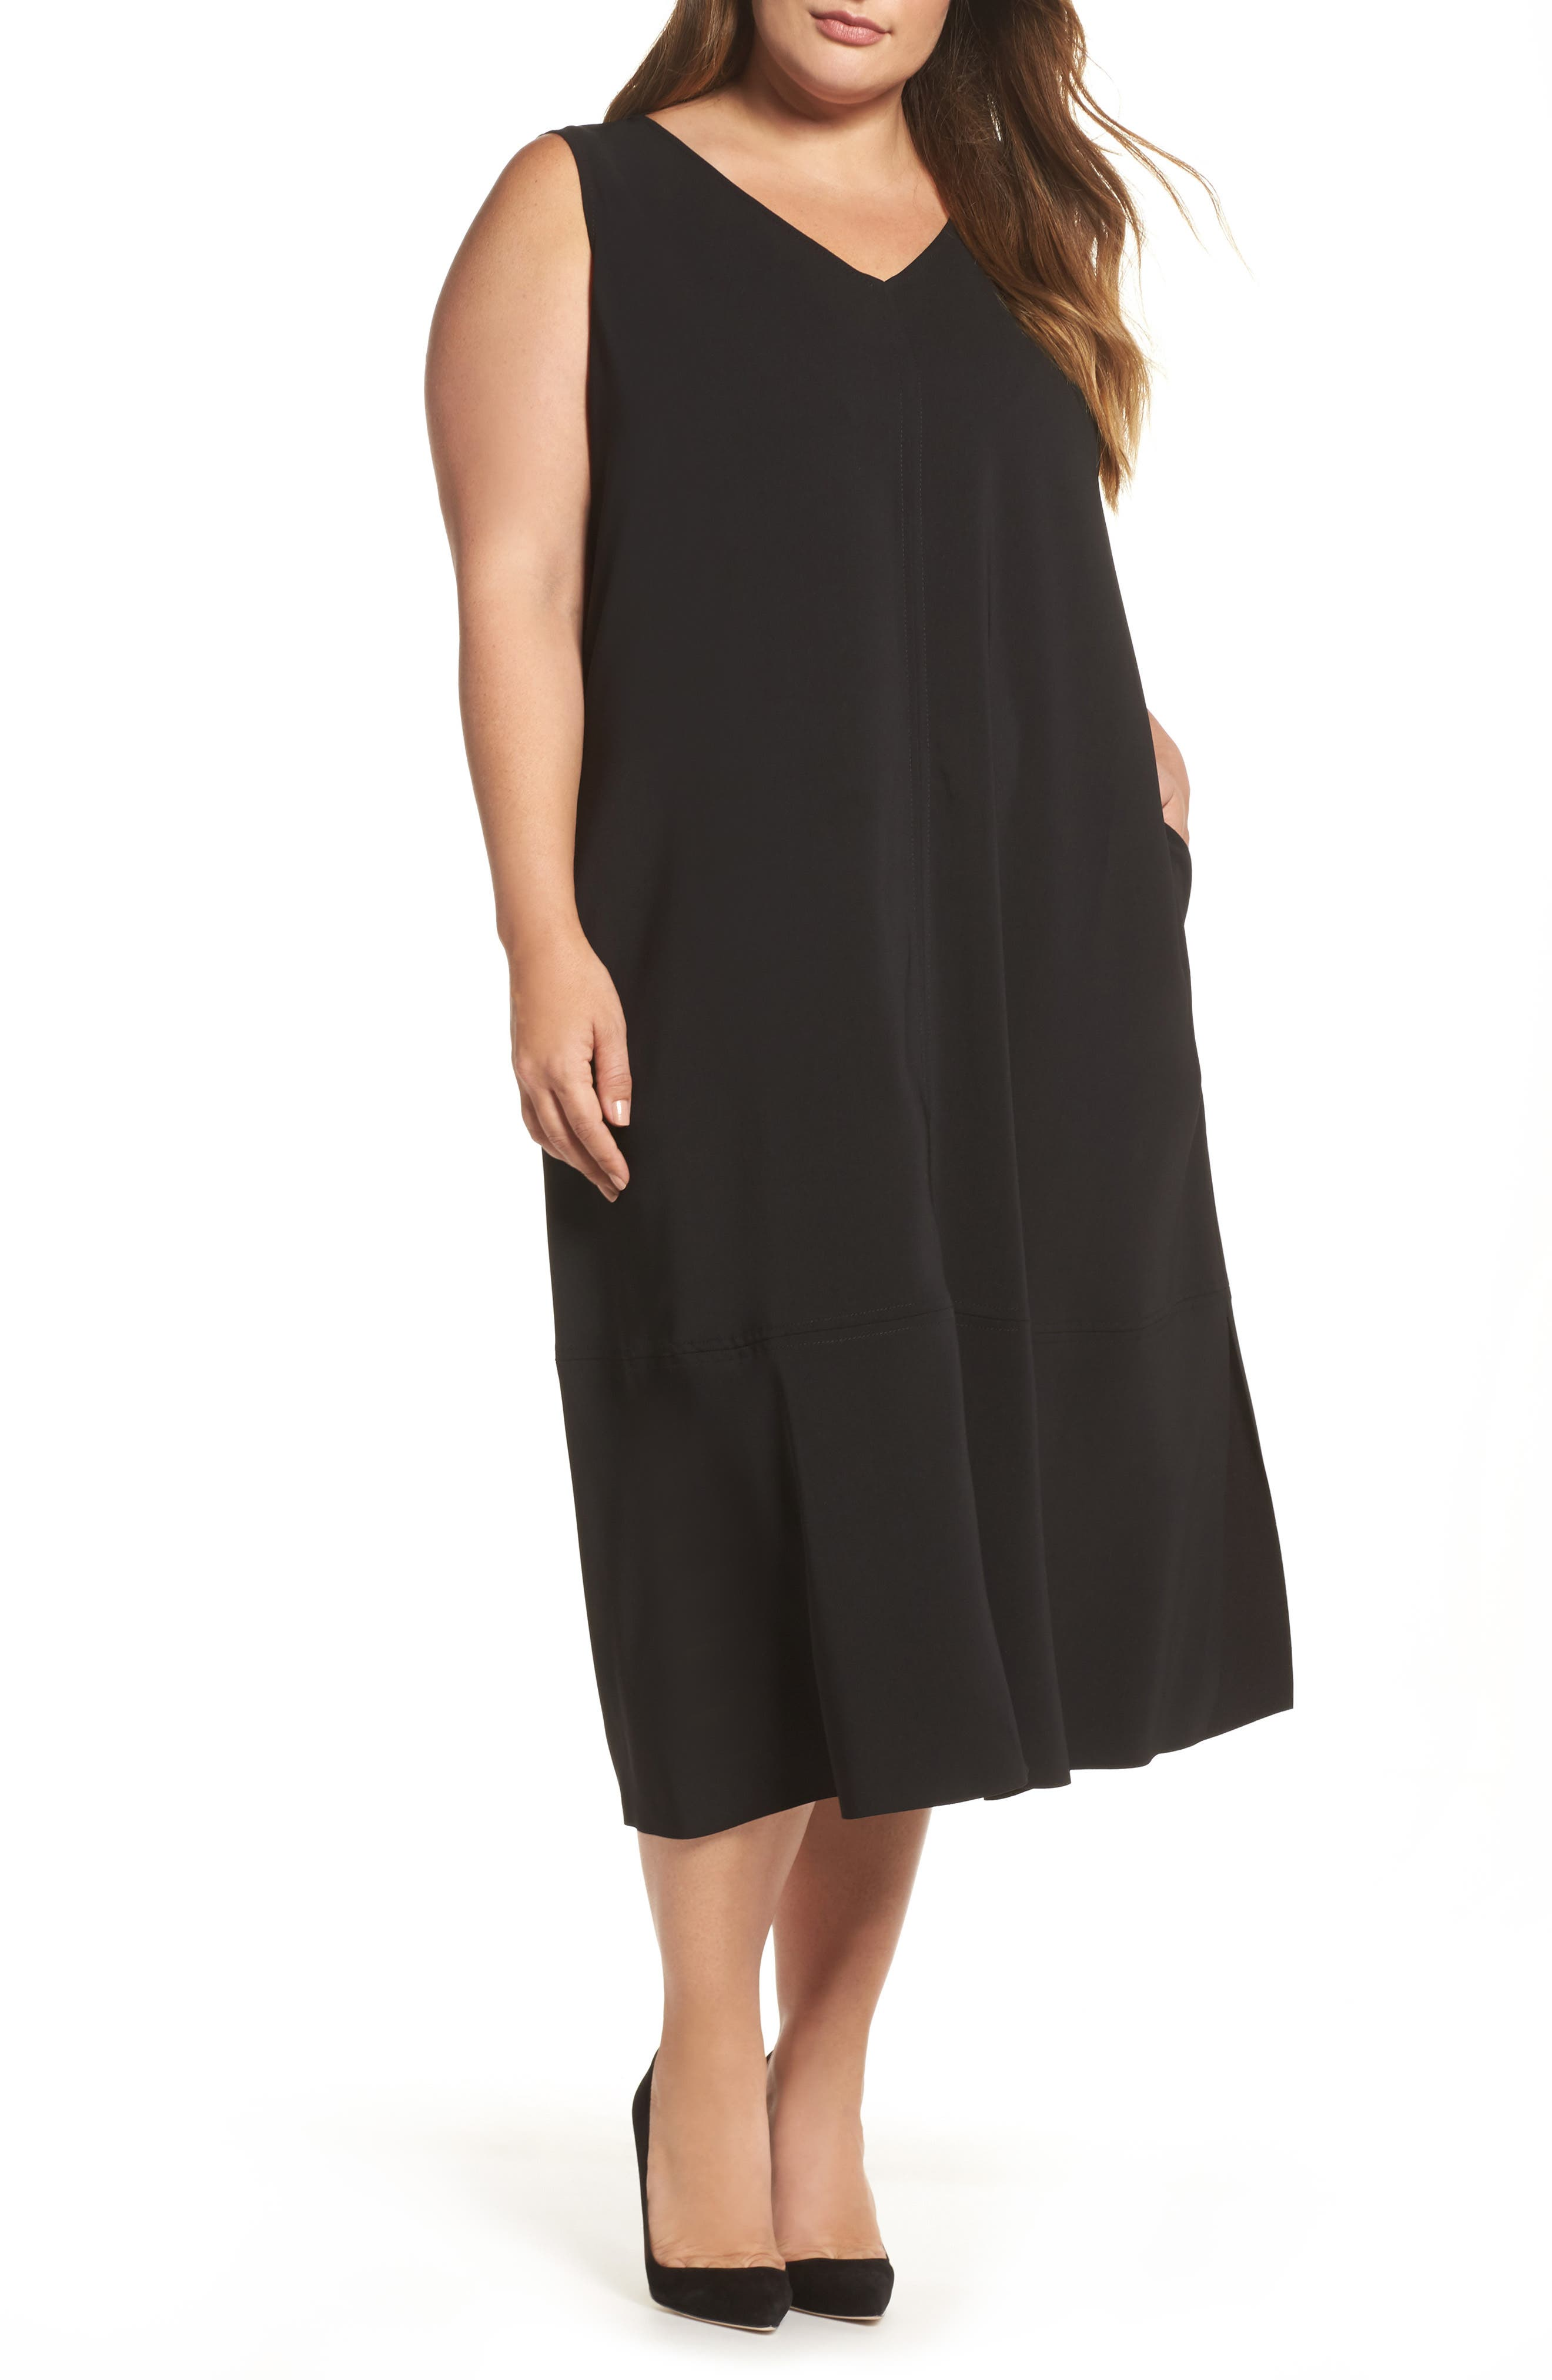 Alternate Image 1 Selected - Persona by Marina Rinaldi Donna Sleeveless Maxi Dress (Plus Size)